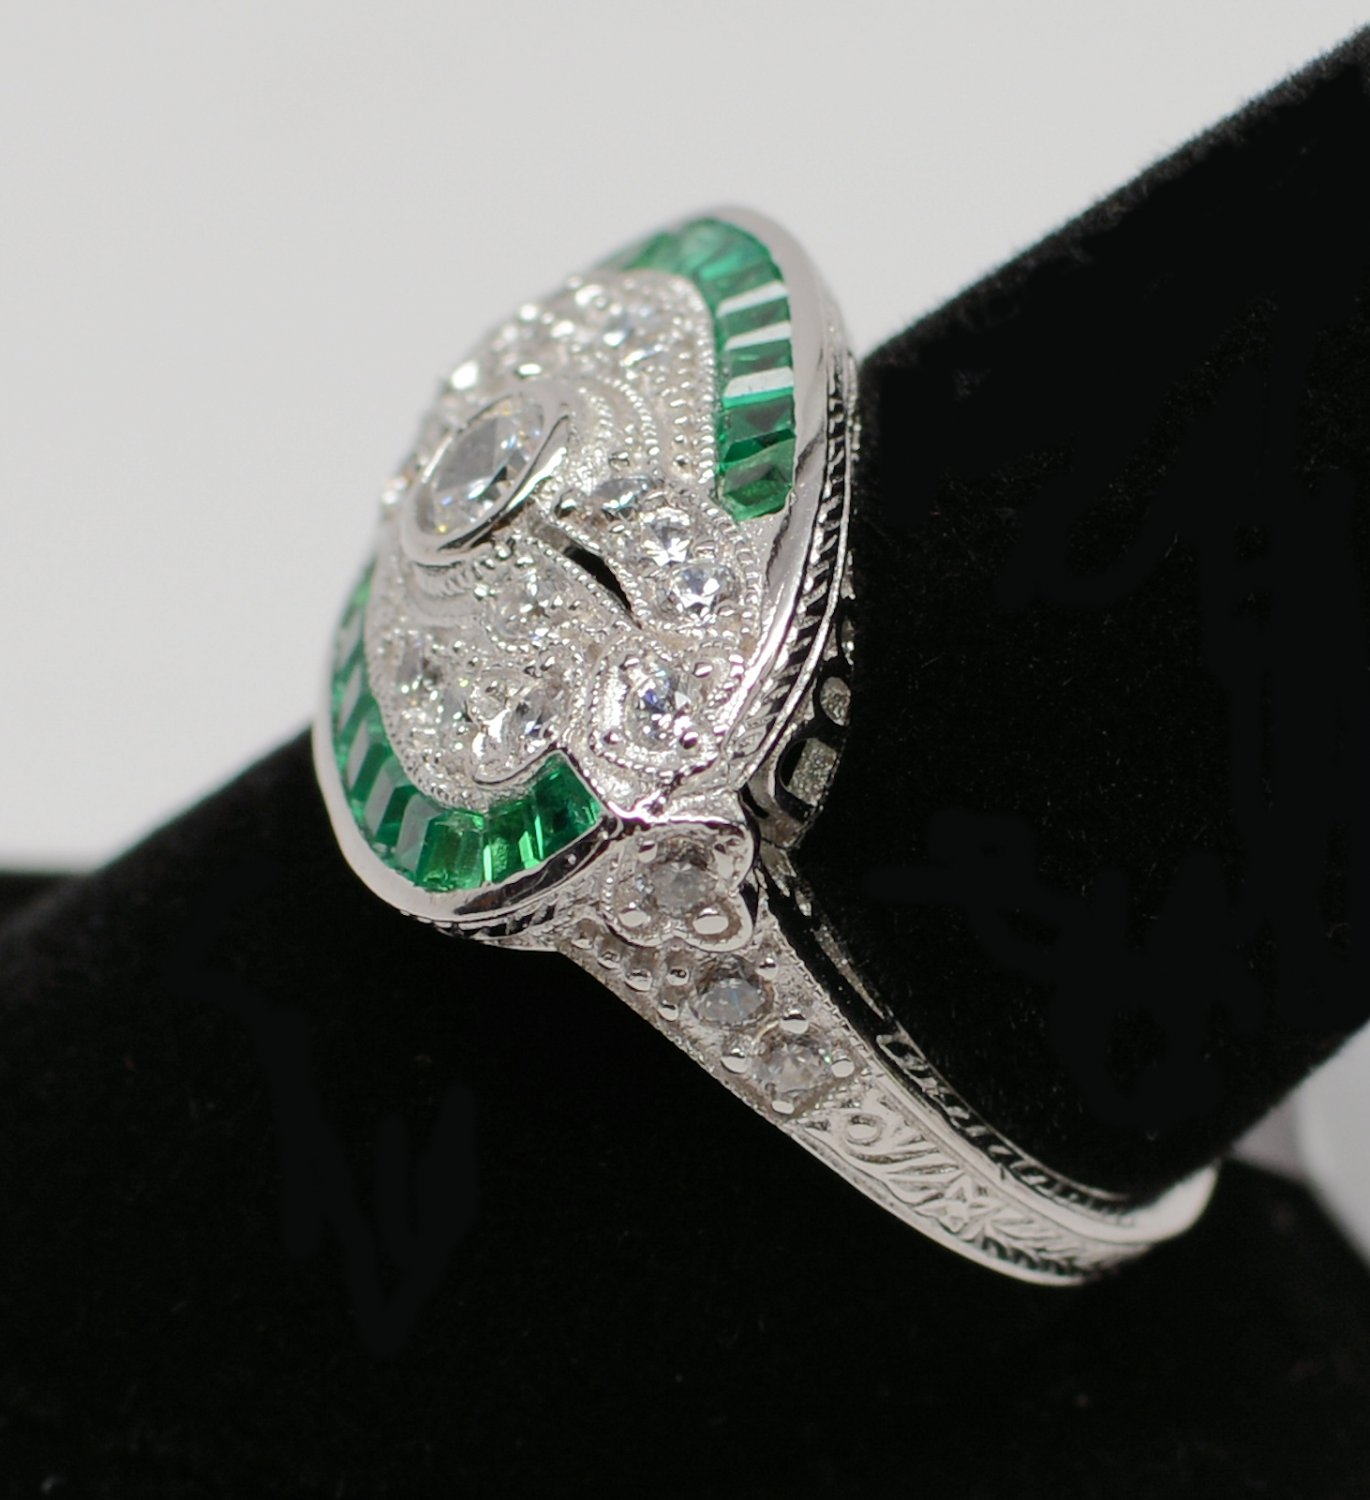 Size 7 - .925 Sterling Silver Antique Reproduction Ring w/CZ Center & Genuine Emeralds - RH Plated